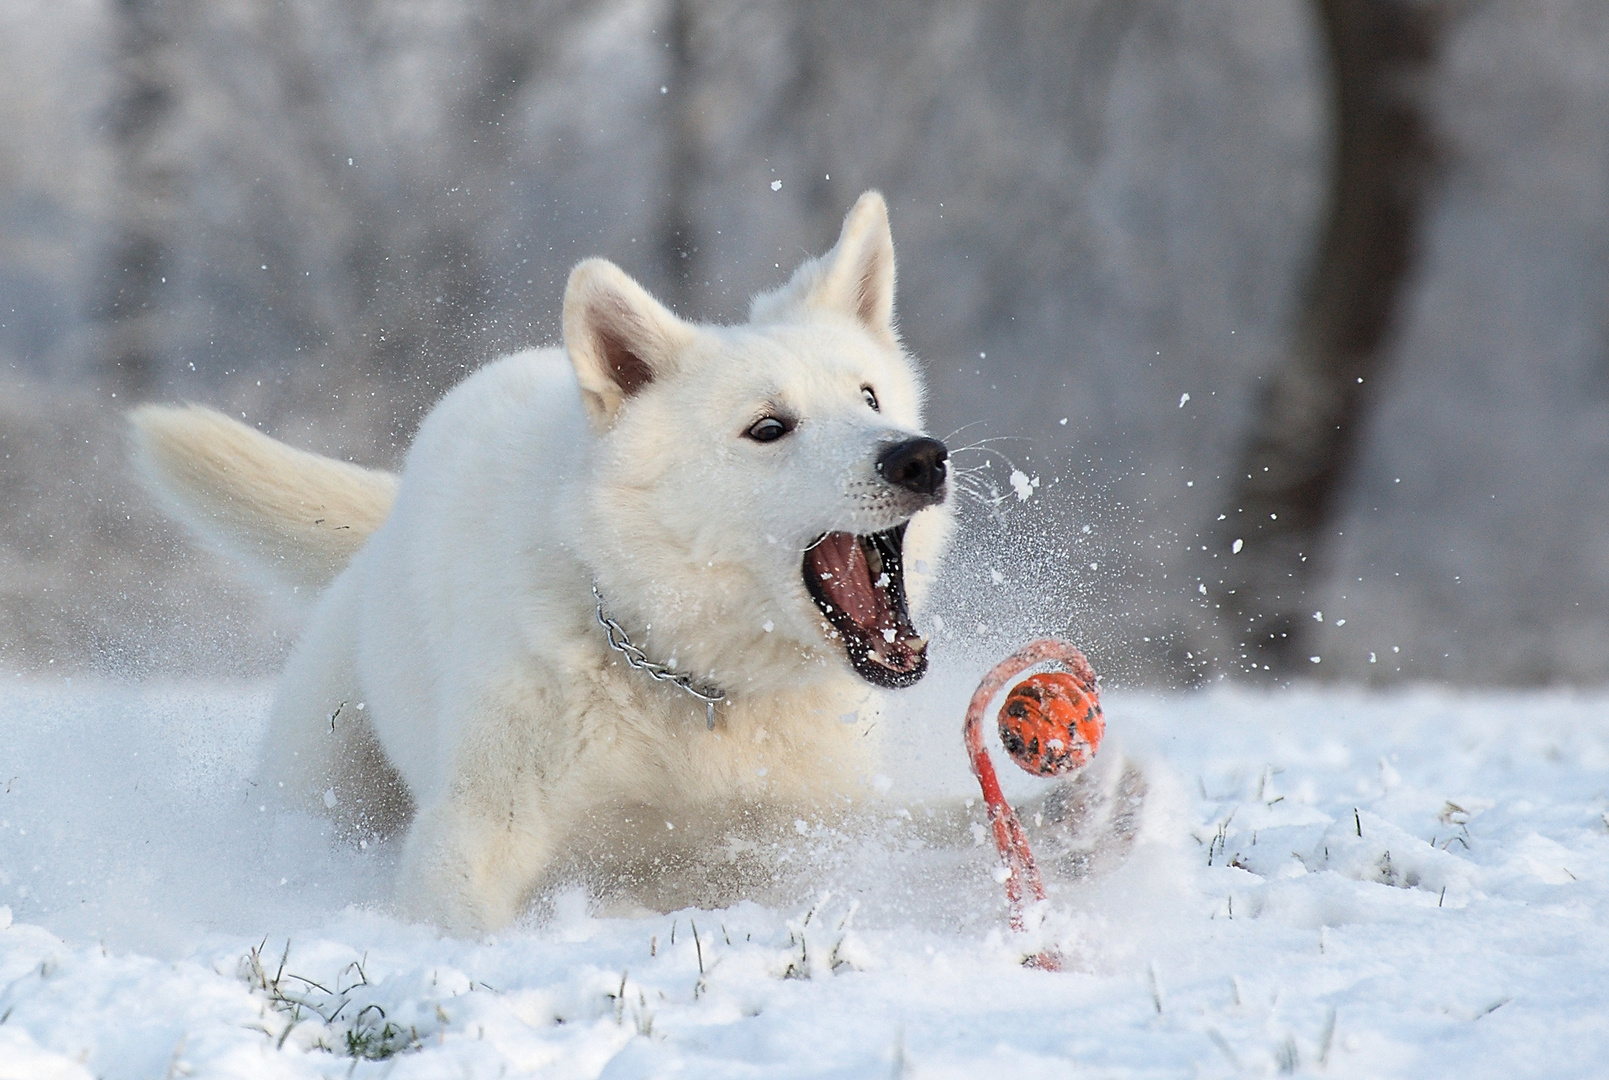 My dog playing in the snow